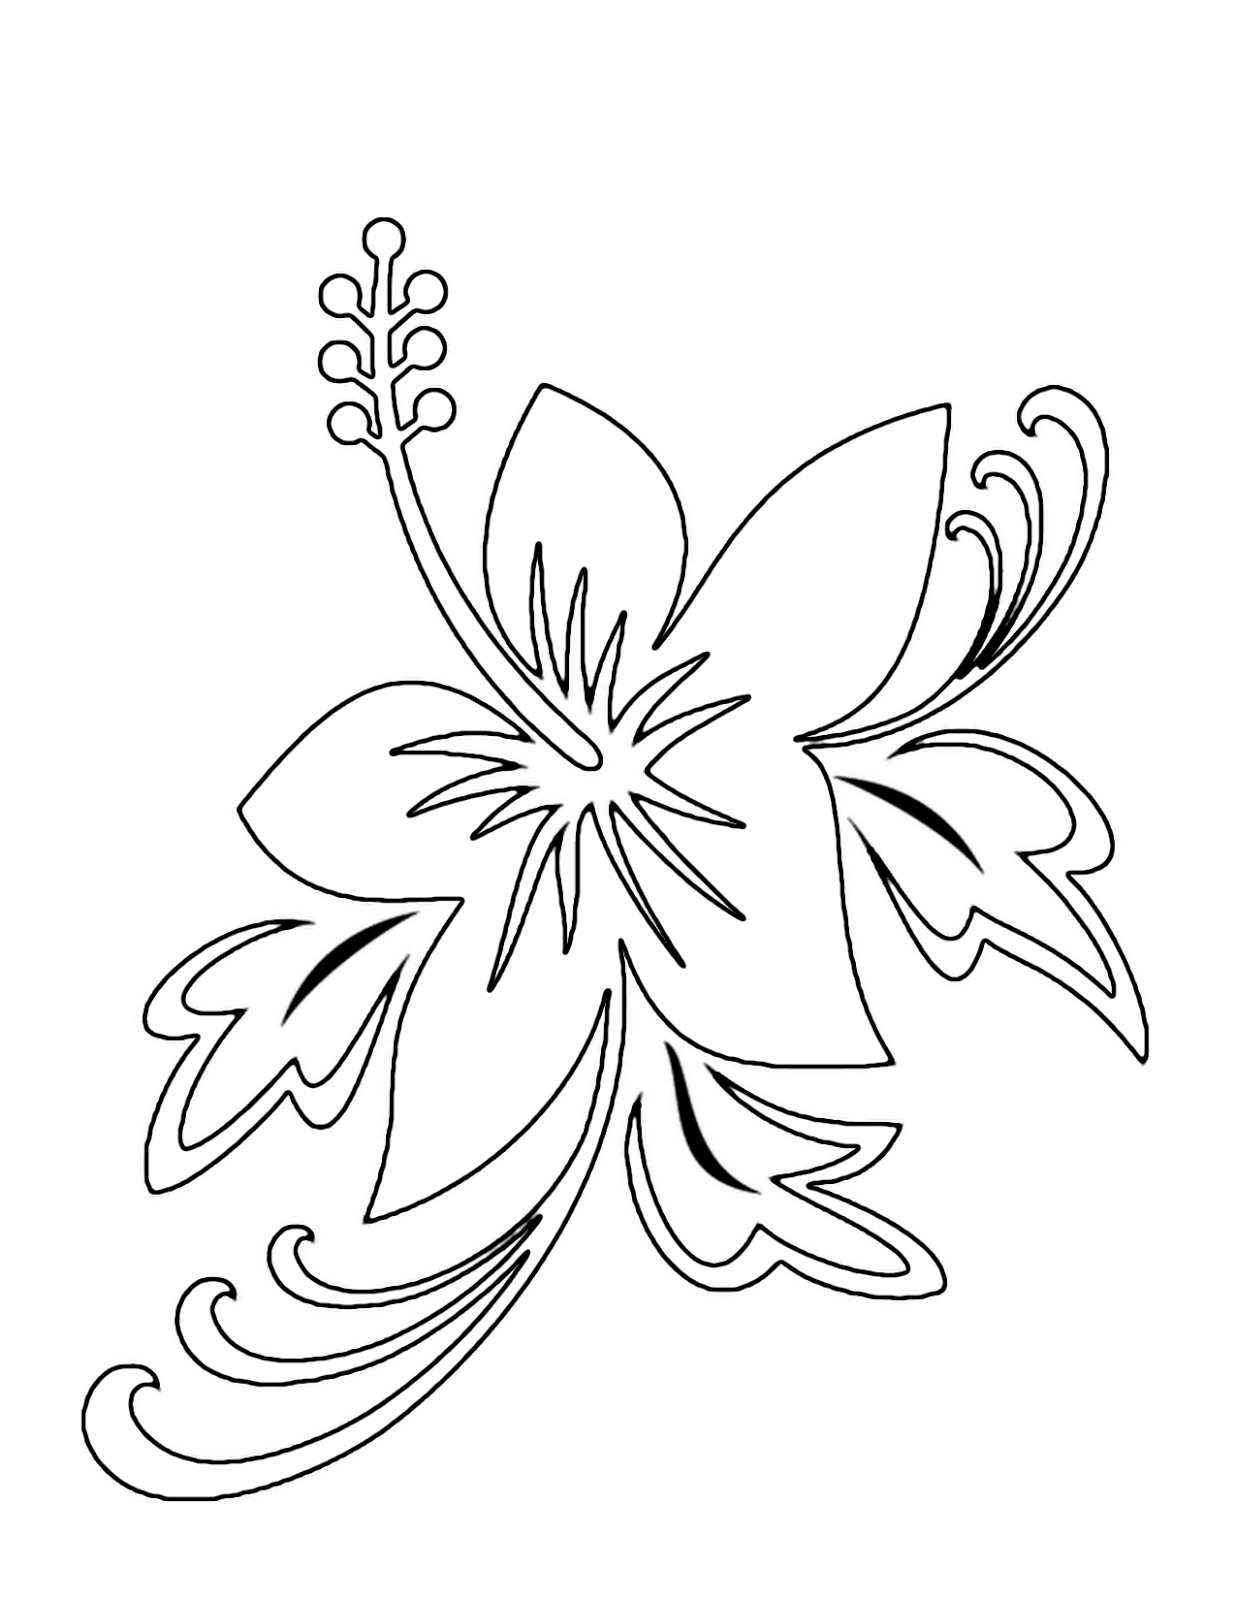 Coloring Pages DLTK's Crafts for Kids - free printable flower coloring pages